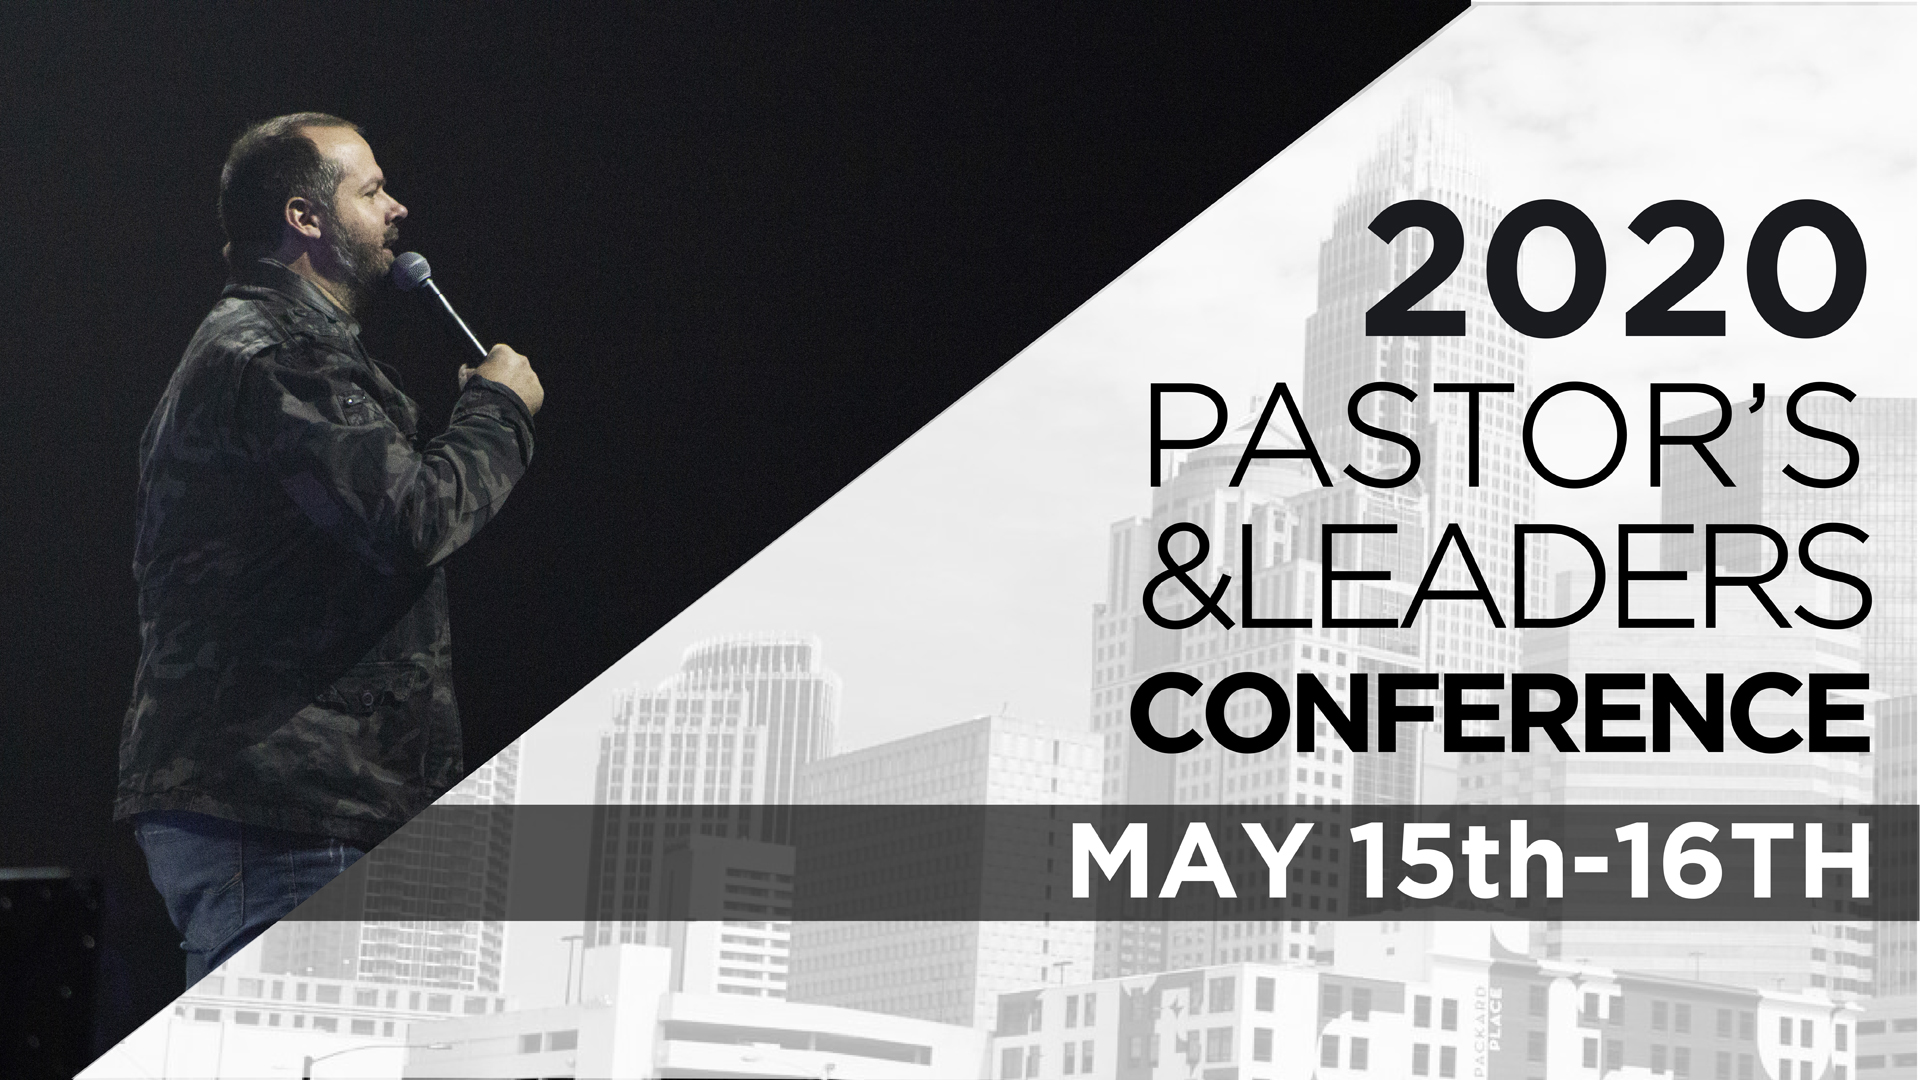 Pastors & Leaders Conference — Judah Church